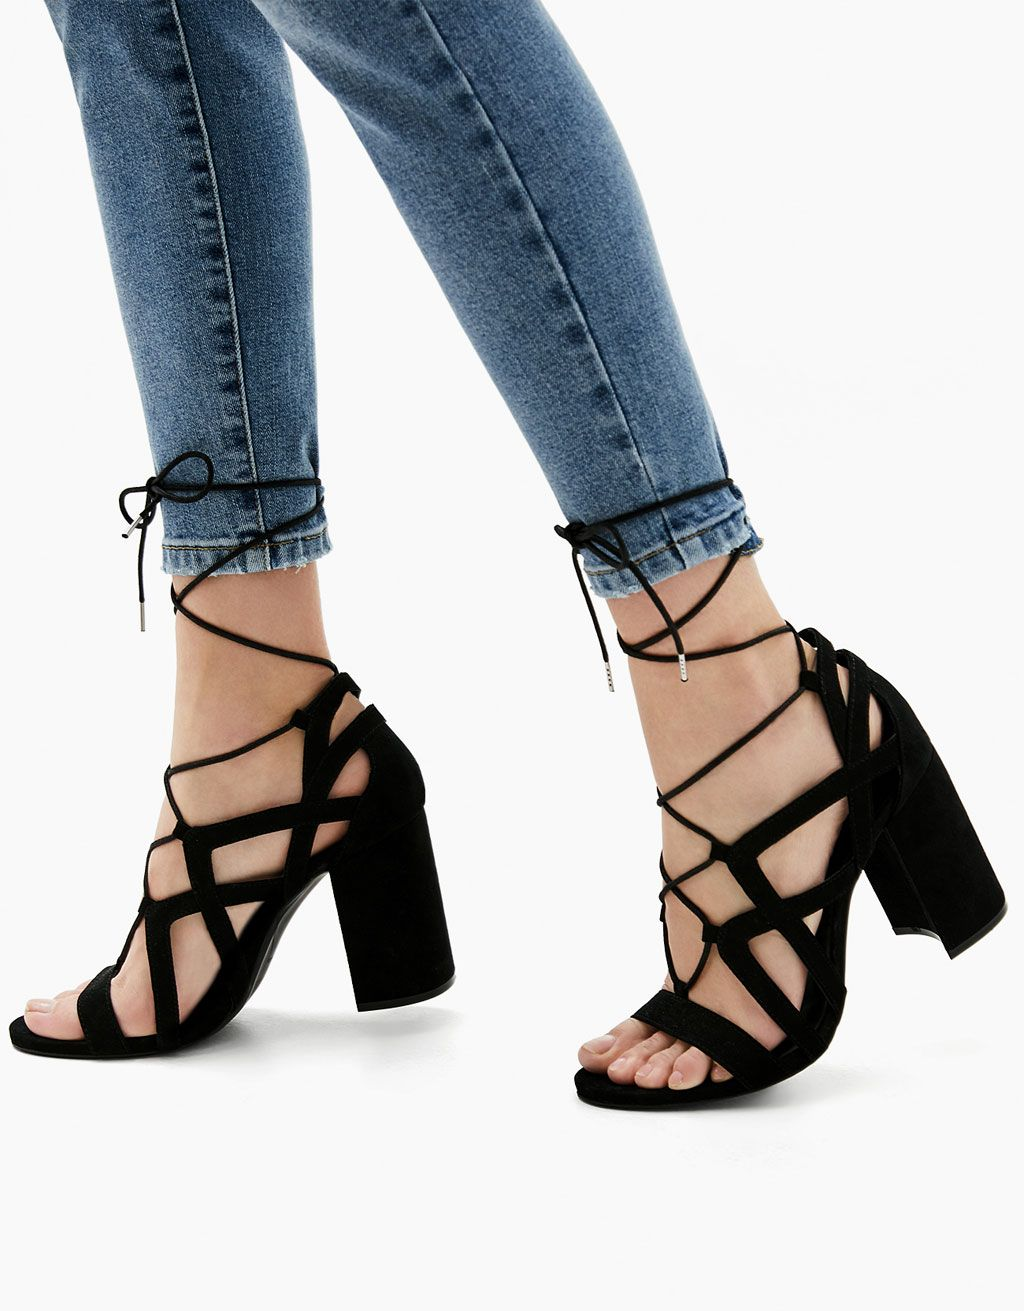 ca9726622223 Block high heel sandals with straps and laces - Heels - Bershka Romania